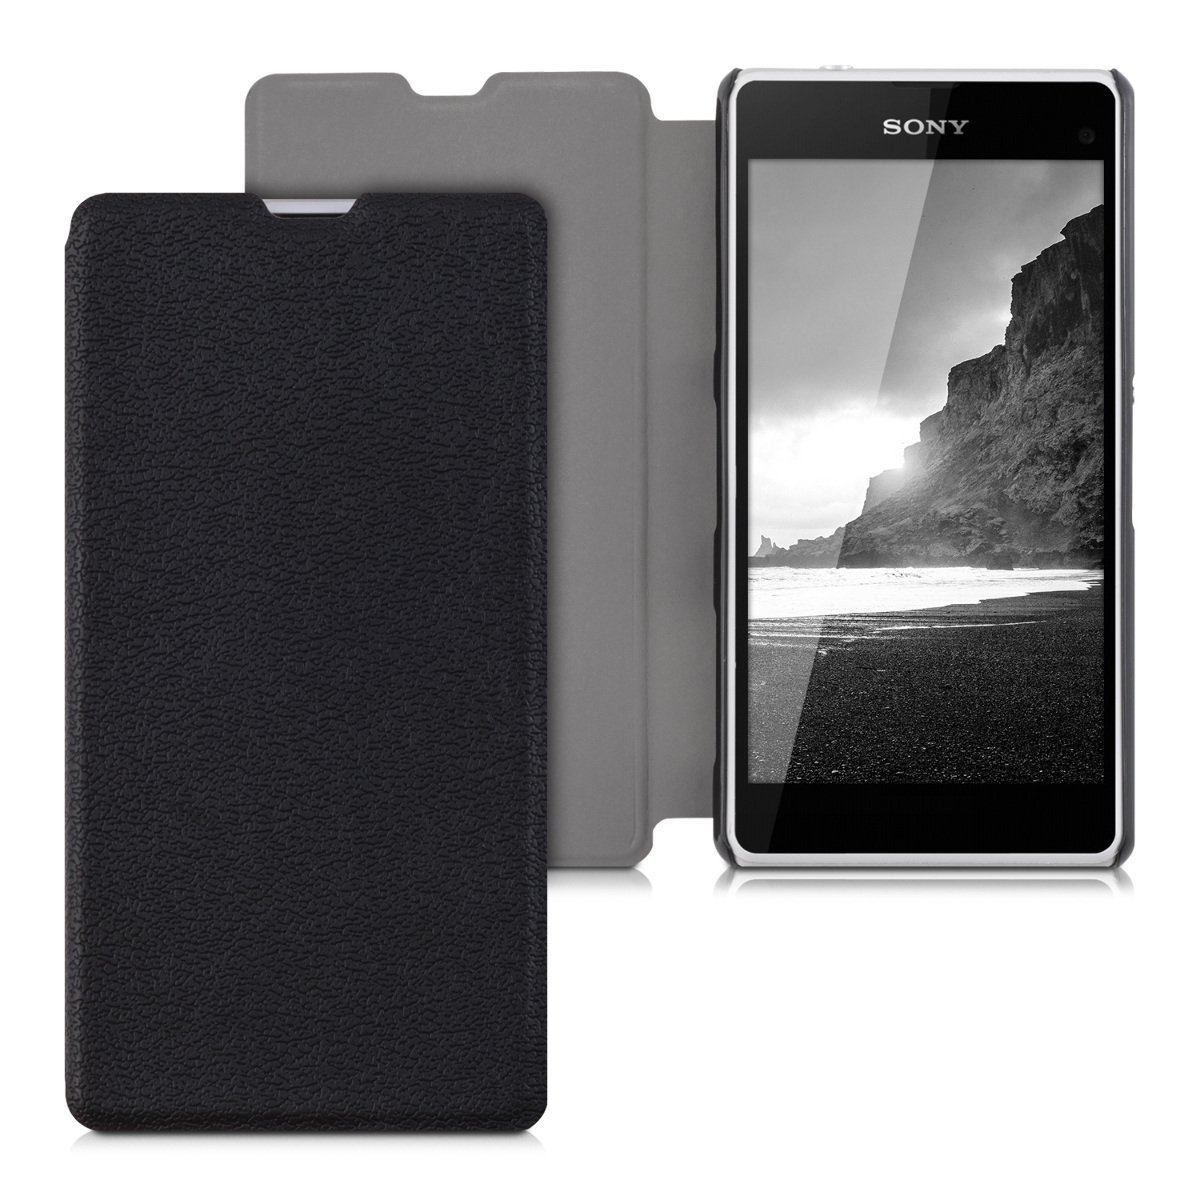 11914afb919 Get Quotations · kwmobile Flip Cover for > Sony Xperia Z1 Compact < with  stand - Hinged leatherette cover